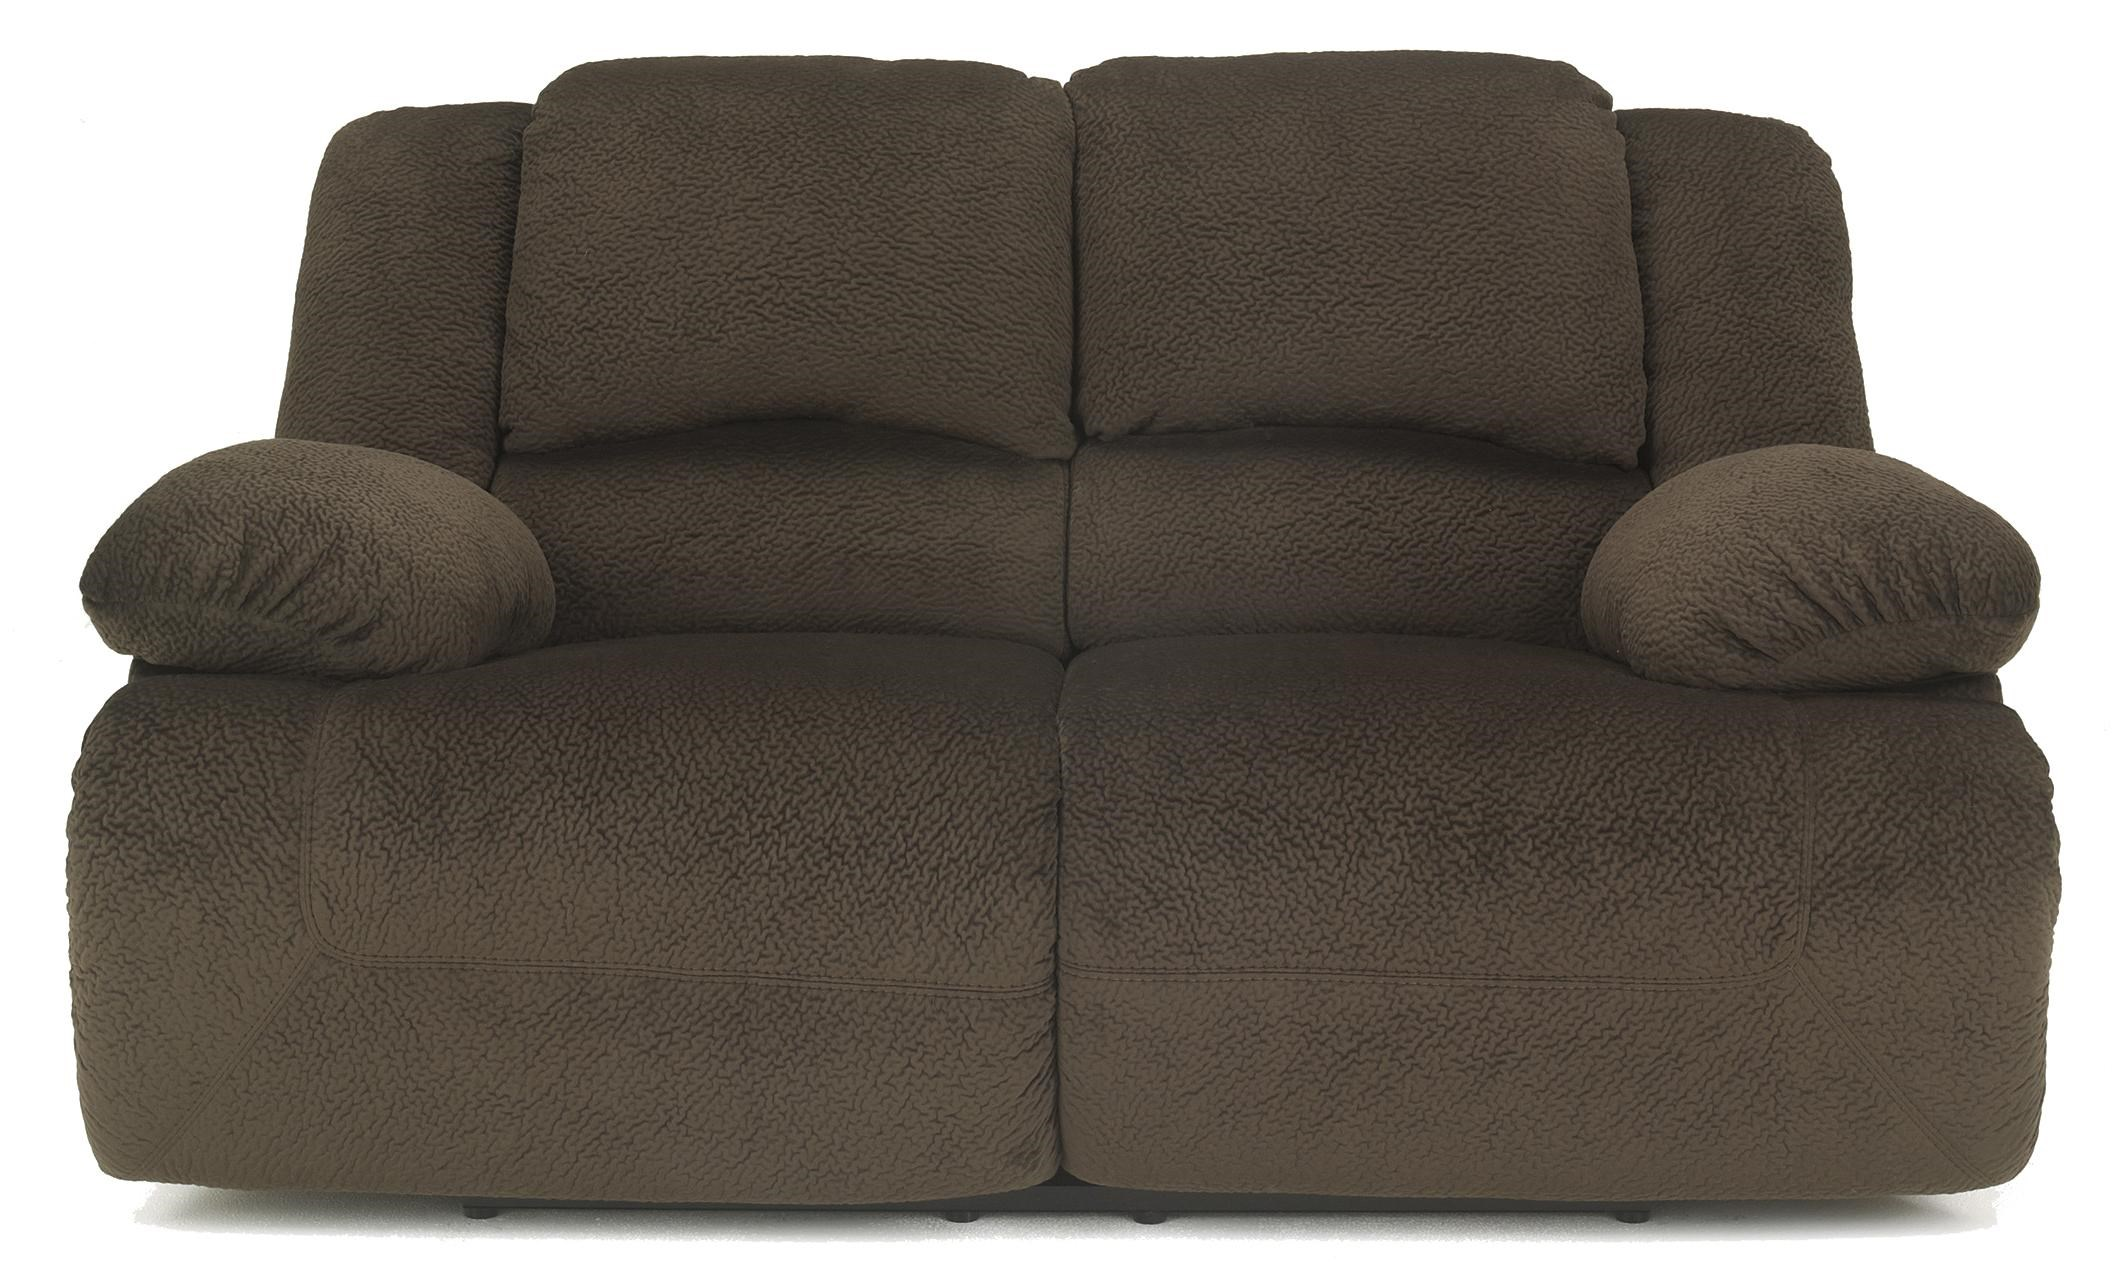 Signature Design by Ashley Toletta - Chocolate Casual Contemporary Reclining Power Loveseat  sc 1 st  Wayside Furniture & Signature Design by Ashley Toletta - Chocolate Casual Contemporary ... islam-shia.org